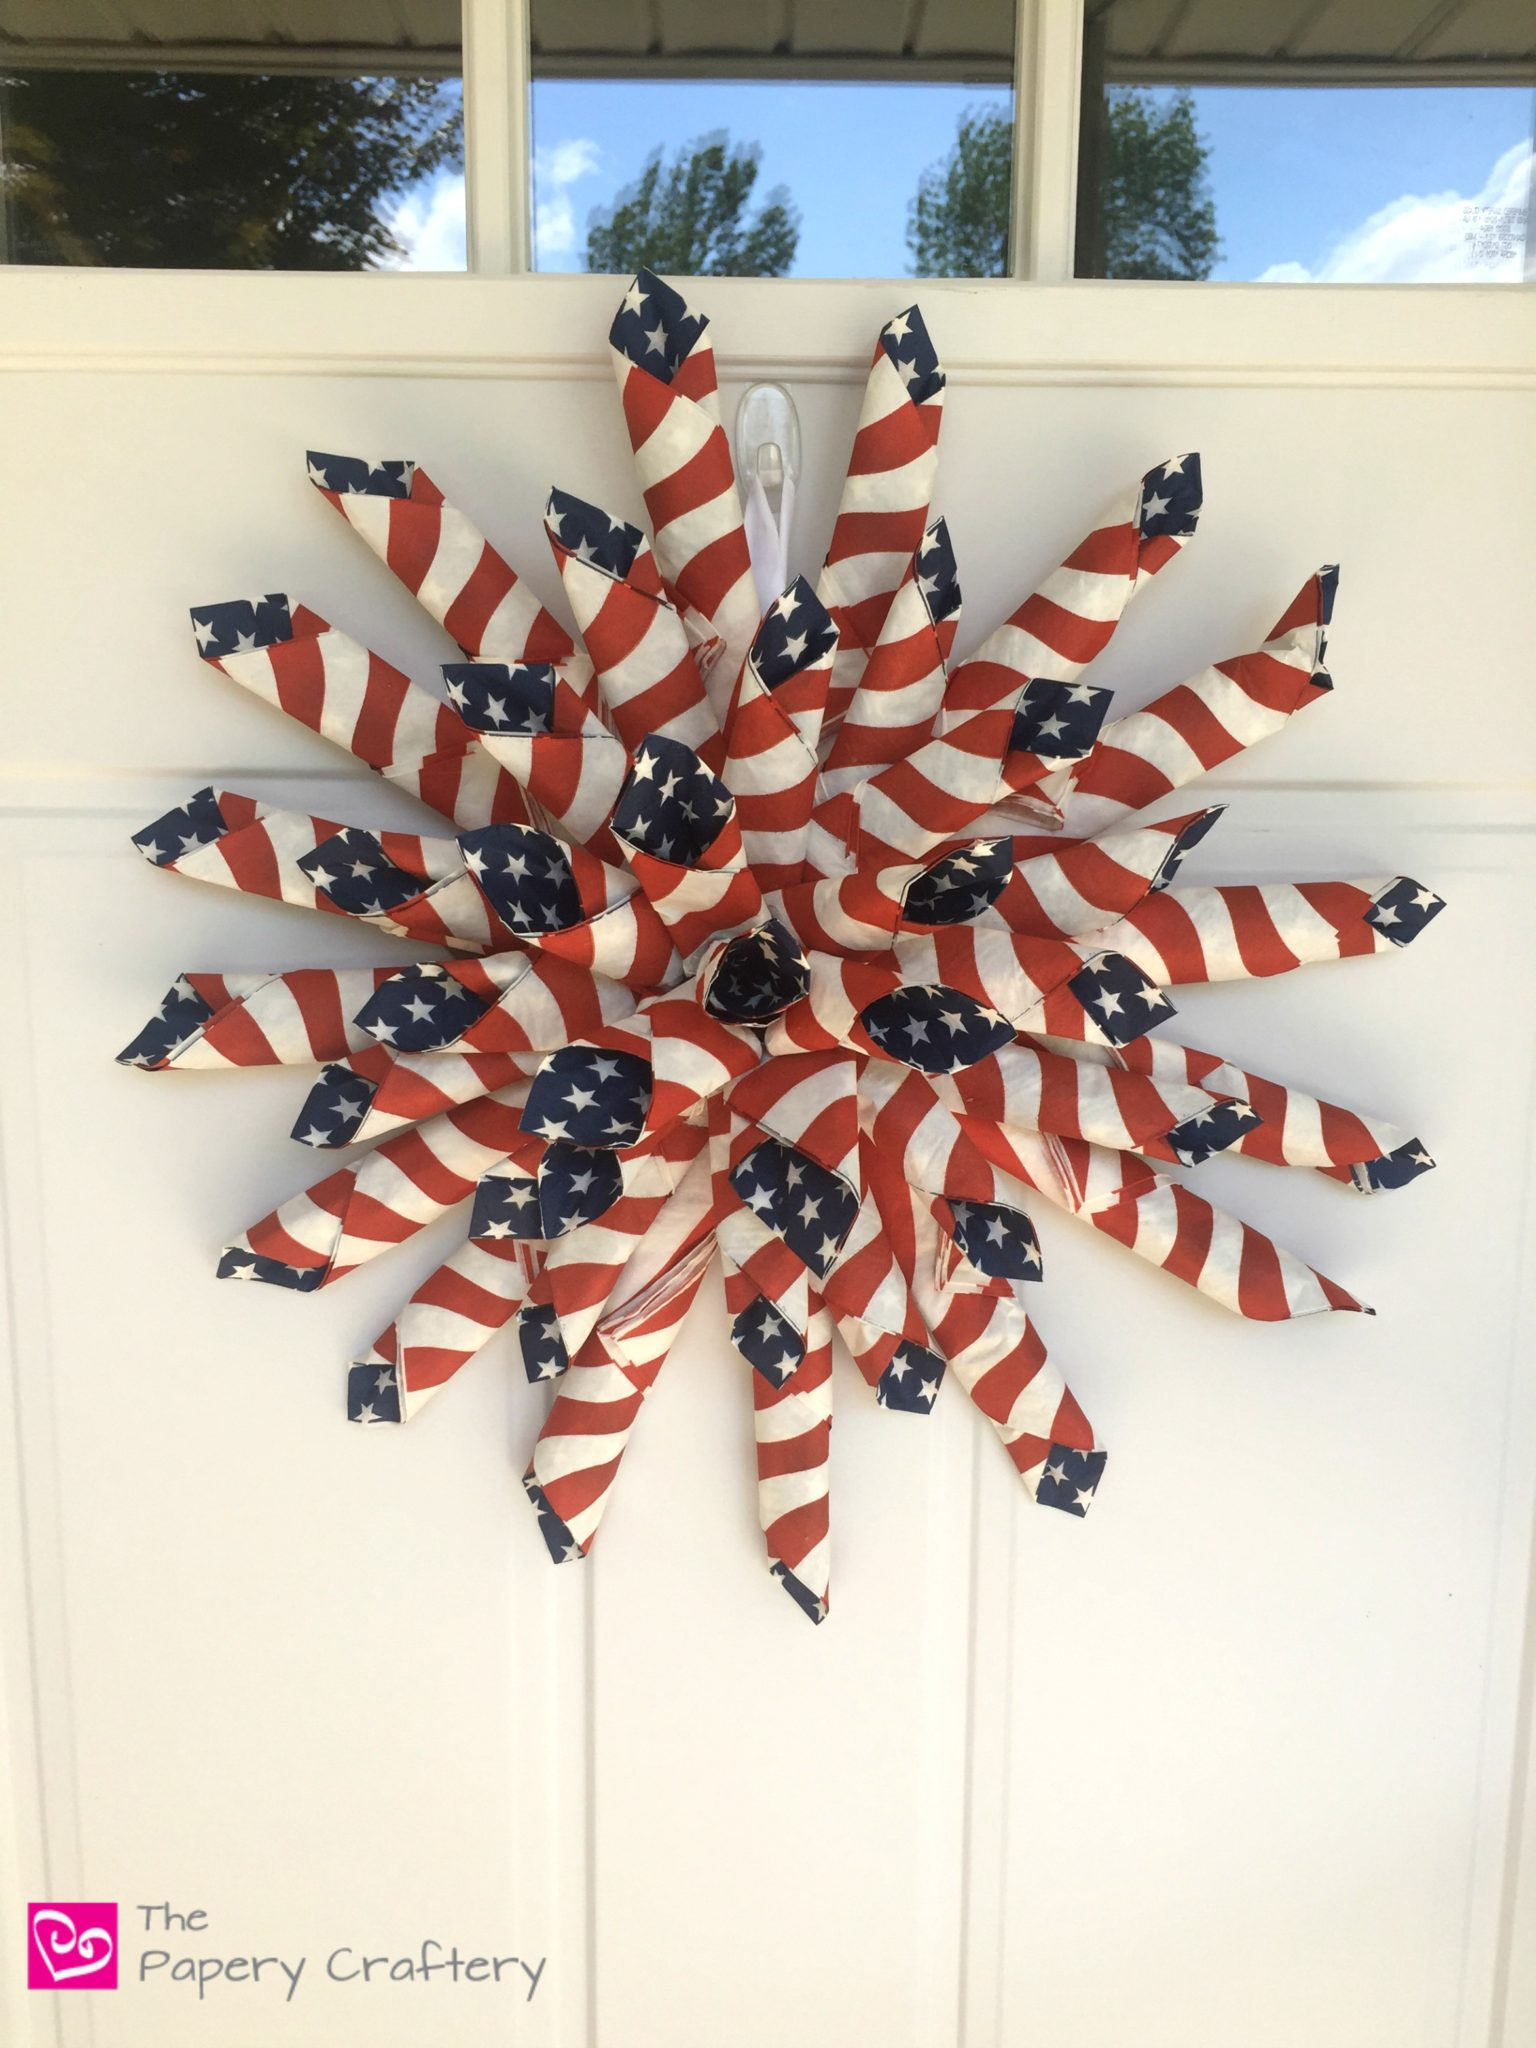 Patriotic Paper Wreath ~ Grab some flag napkins to whip up this red, white and blue stunner that can dress up your front door all summer long! || www.thepaperycraftery.com